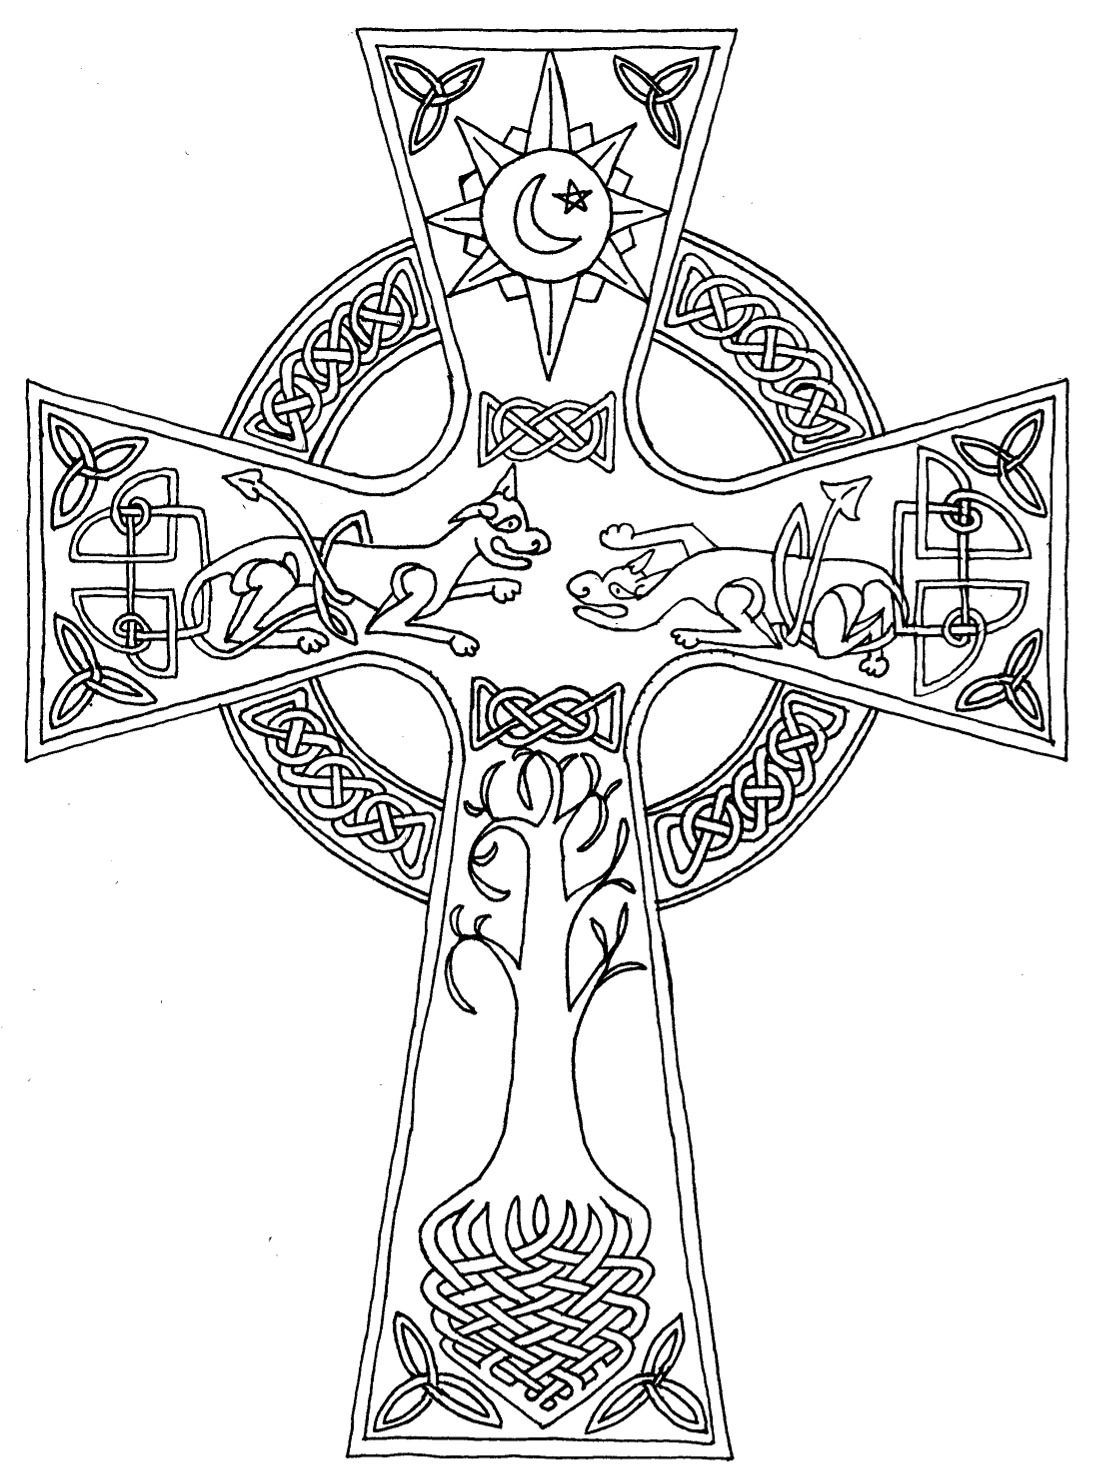 Coloring pages crosses - Celtic Cross Coloring Pages 16 Jpg